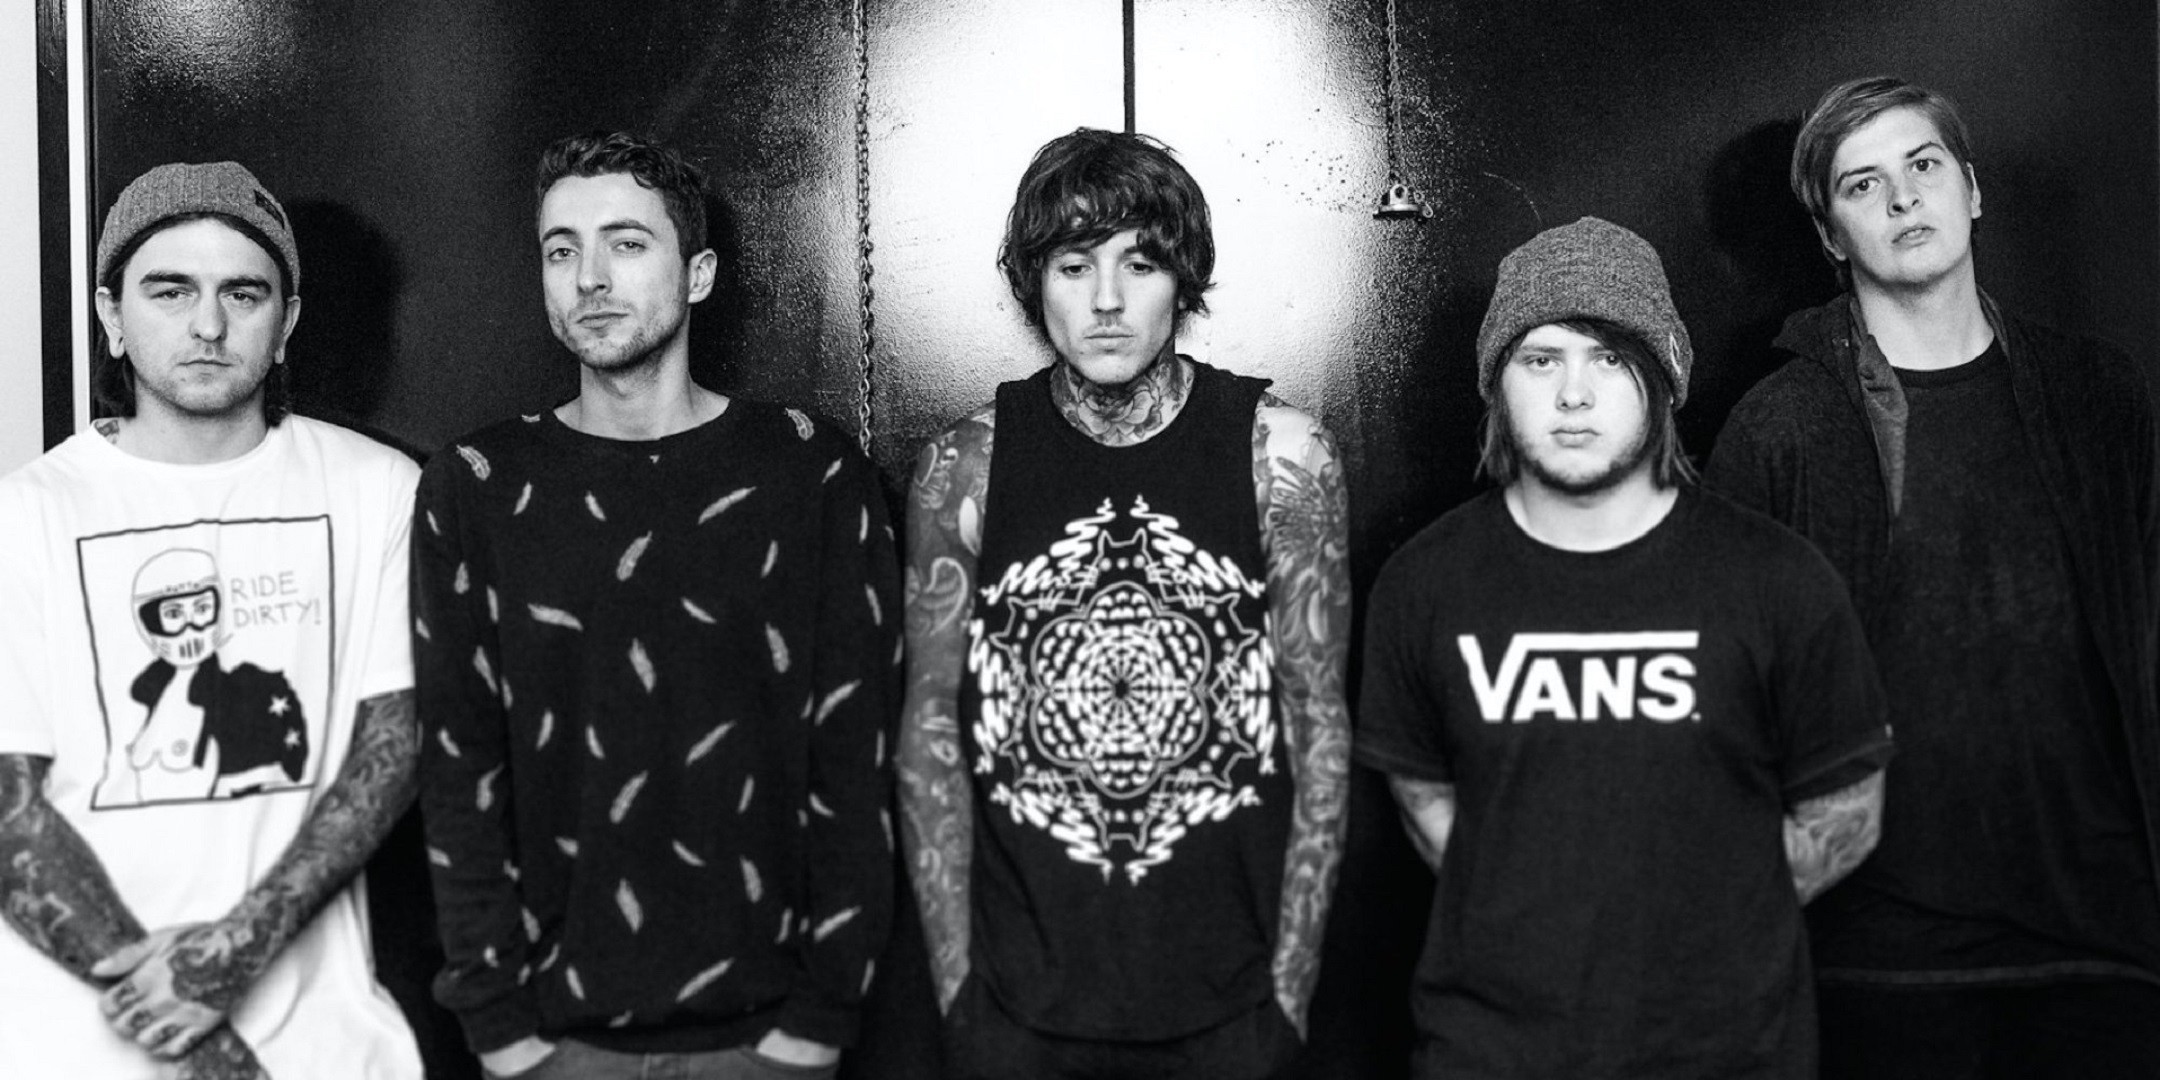 Bring Me The Horizon Hd  - Bring Me The Horizon , HD Wallpaper & Backgrounds